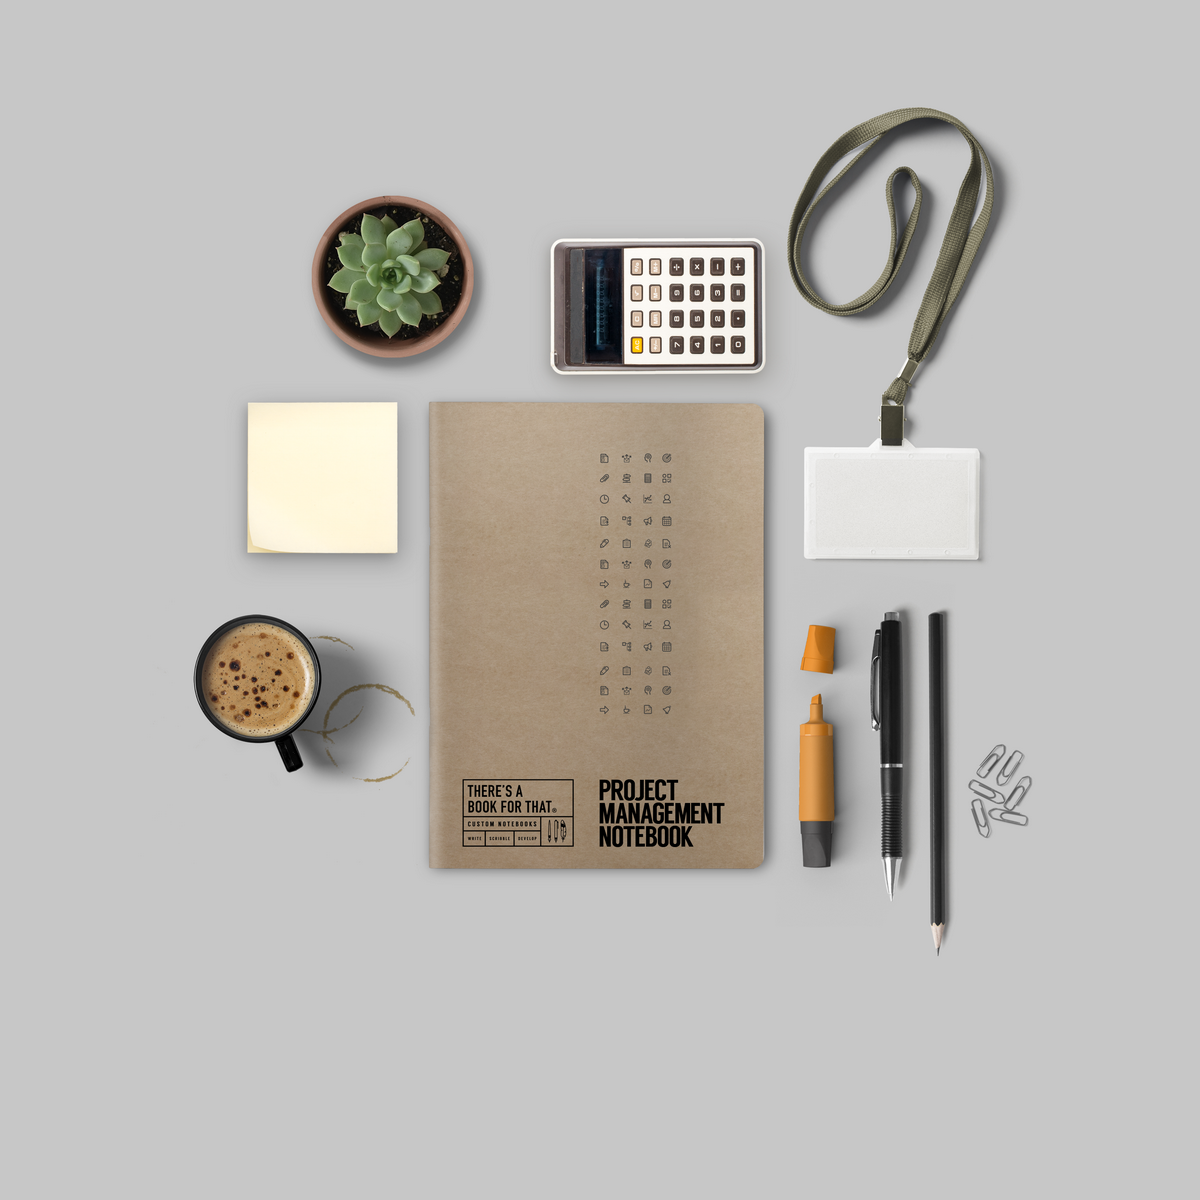 B-118_Projectmanagement Notebook_Stationery_Lifestyle